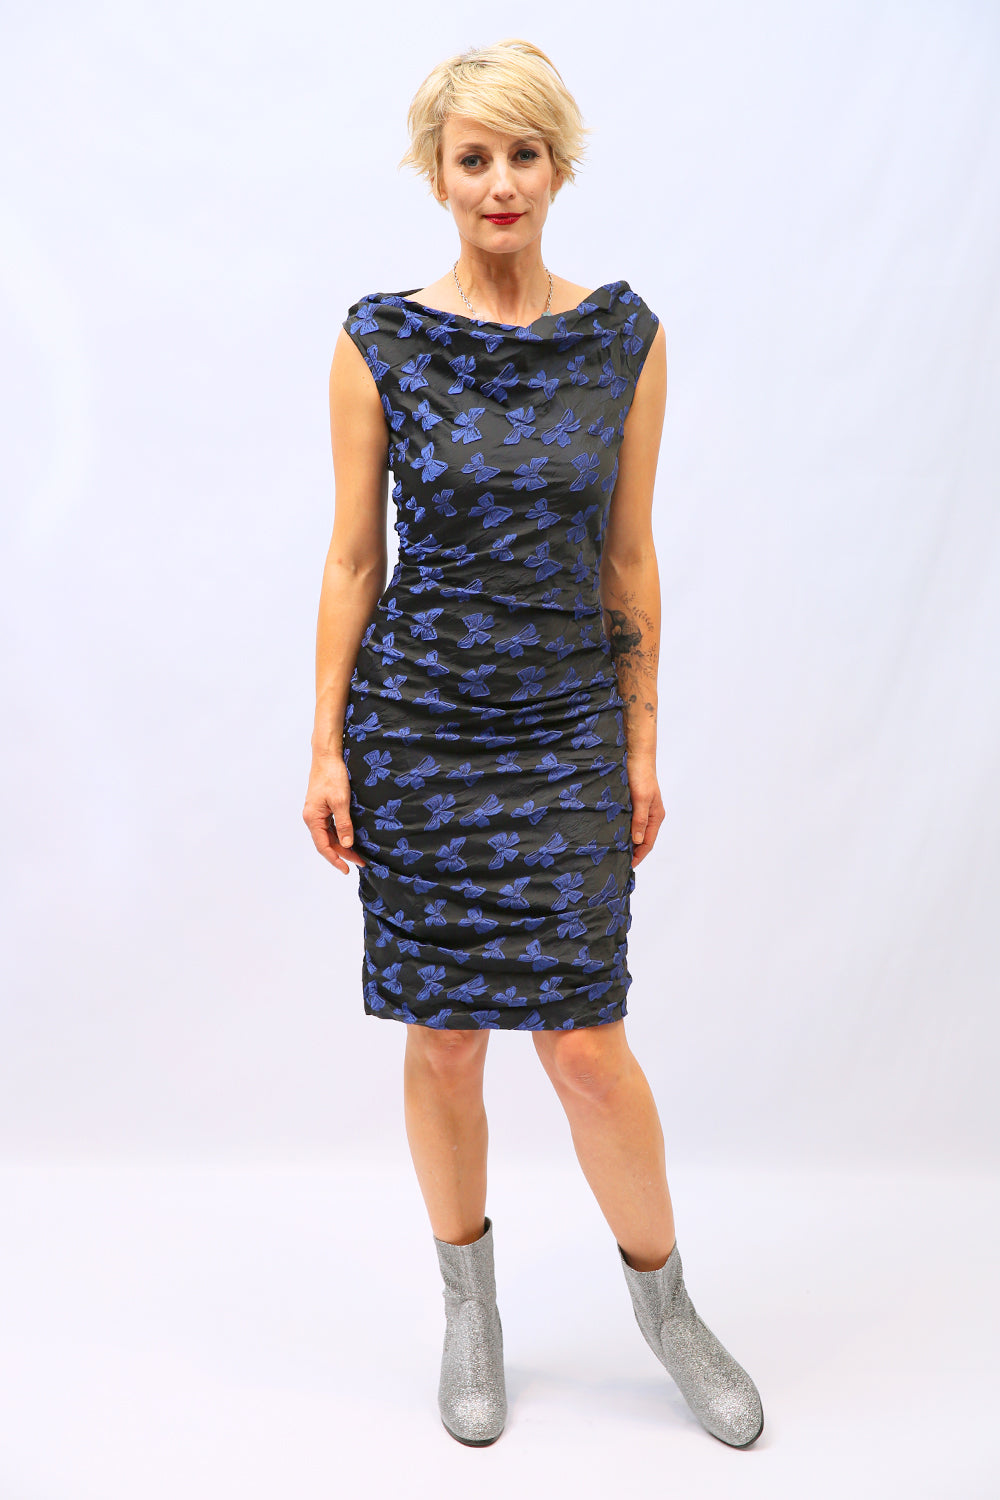 Mercedes Marina Dress